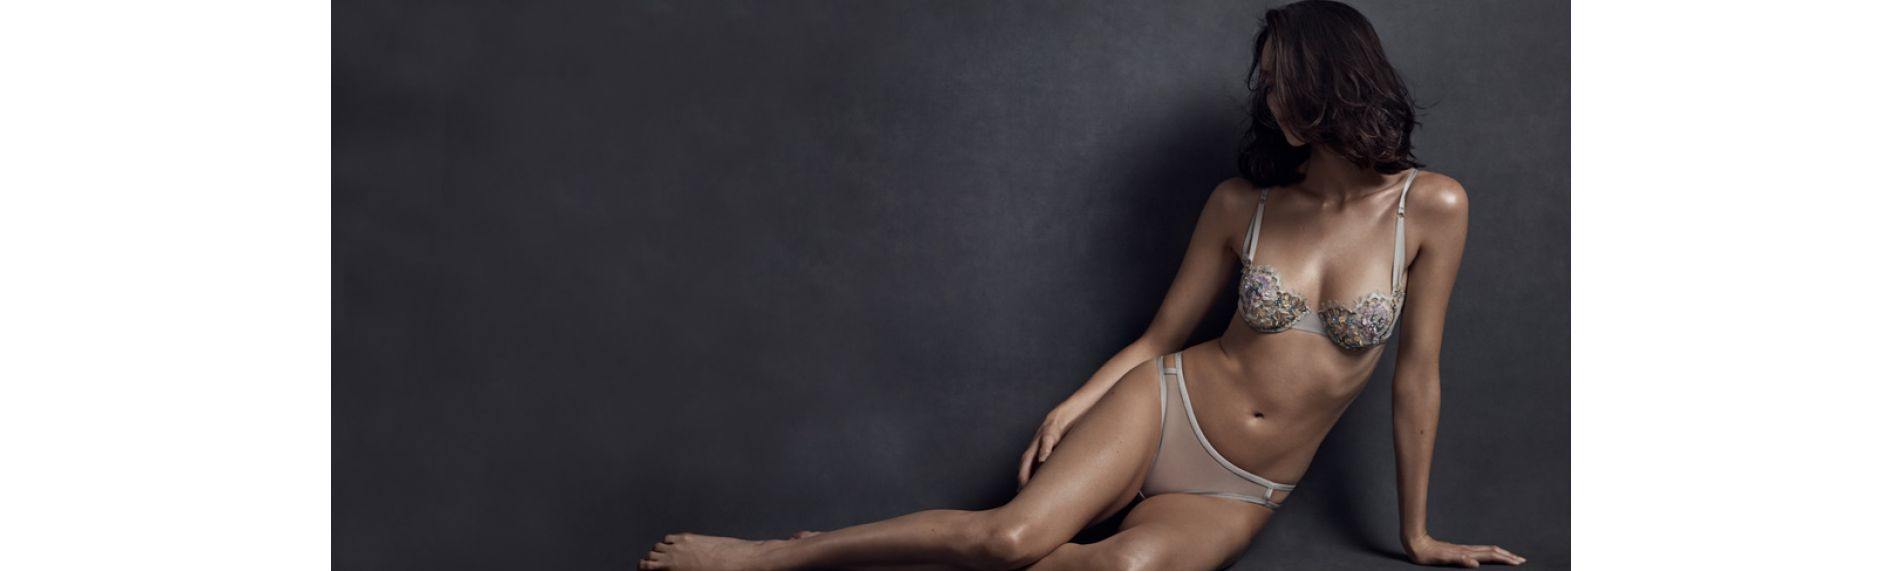 Taryn Winters Lingerie Collection